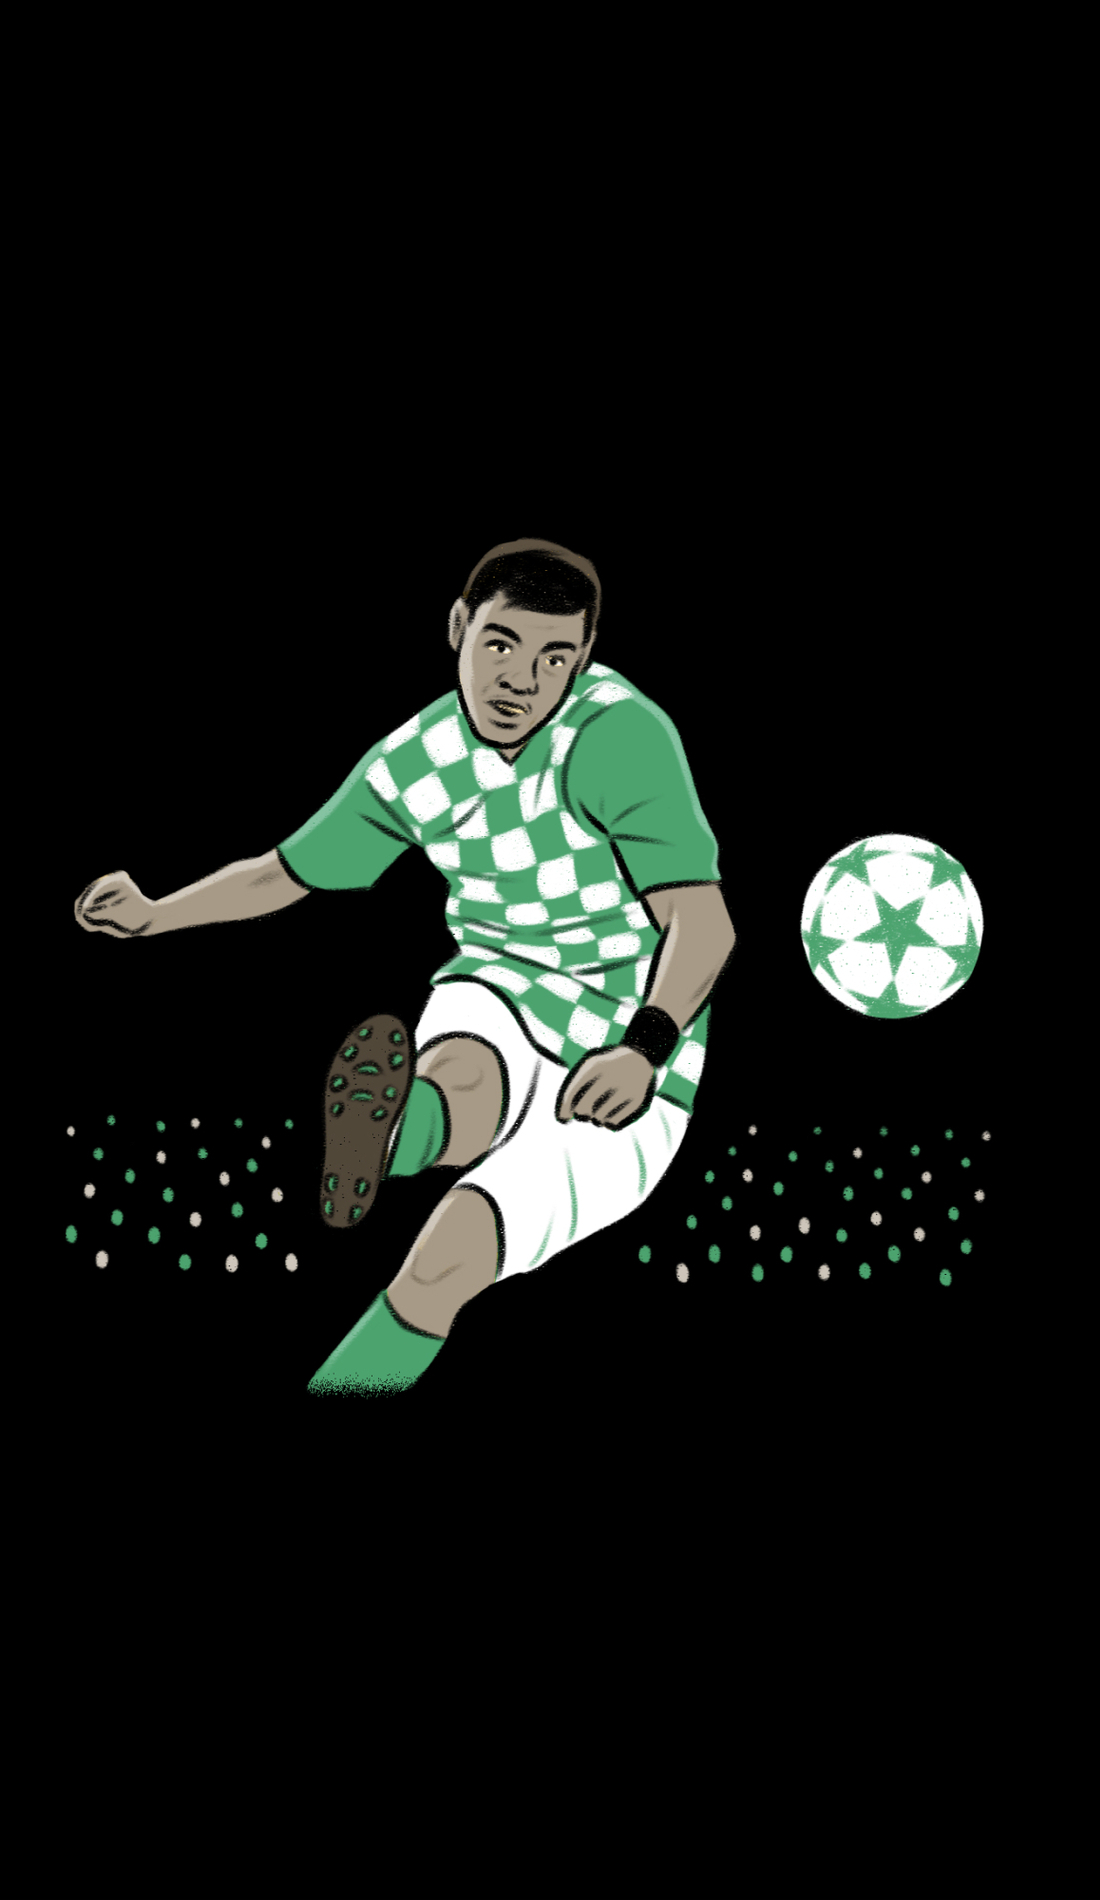 A Atletico Madrid live event